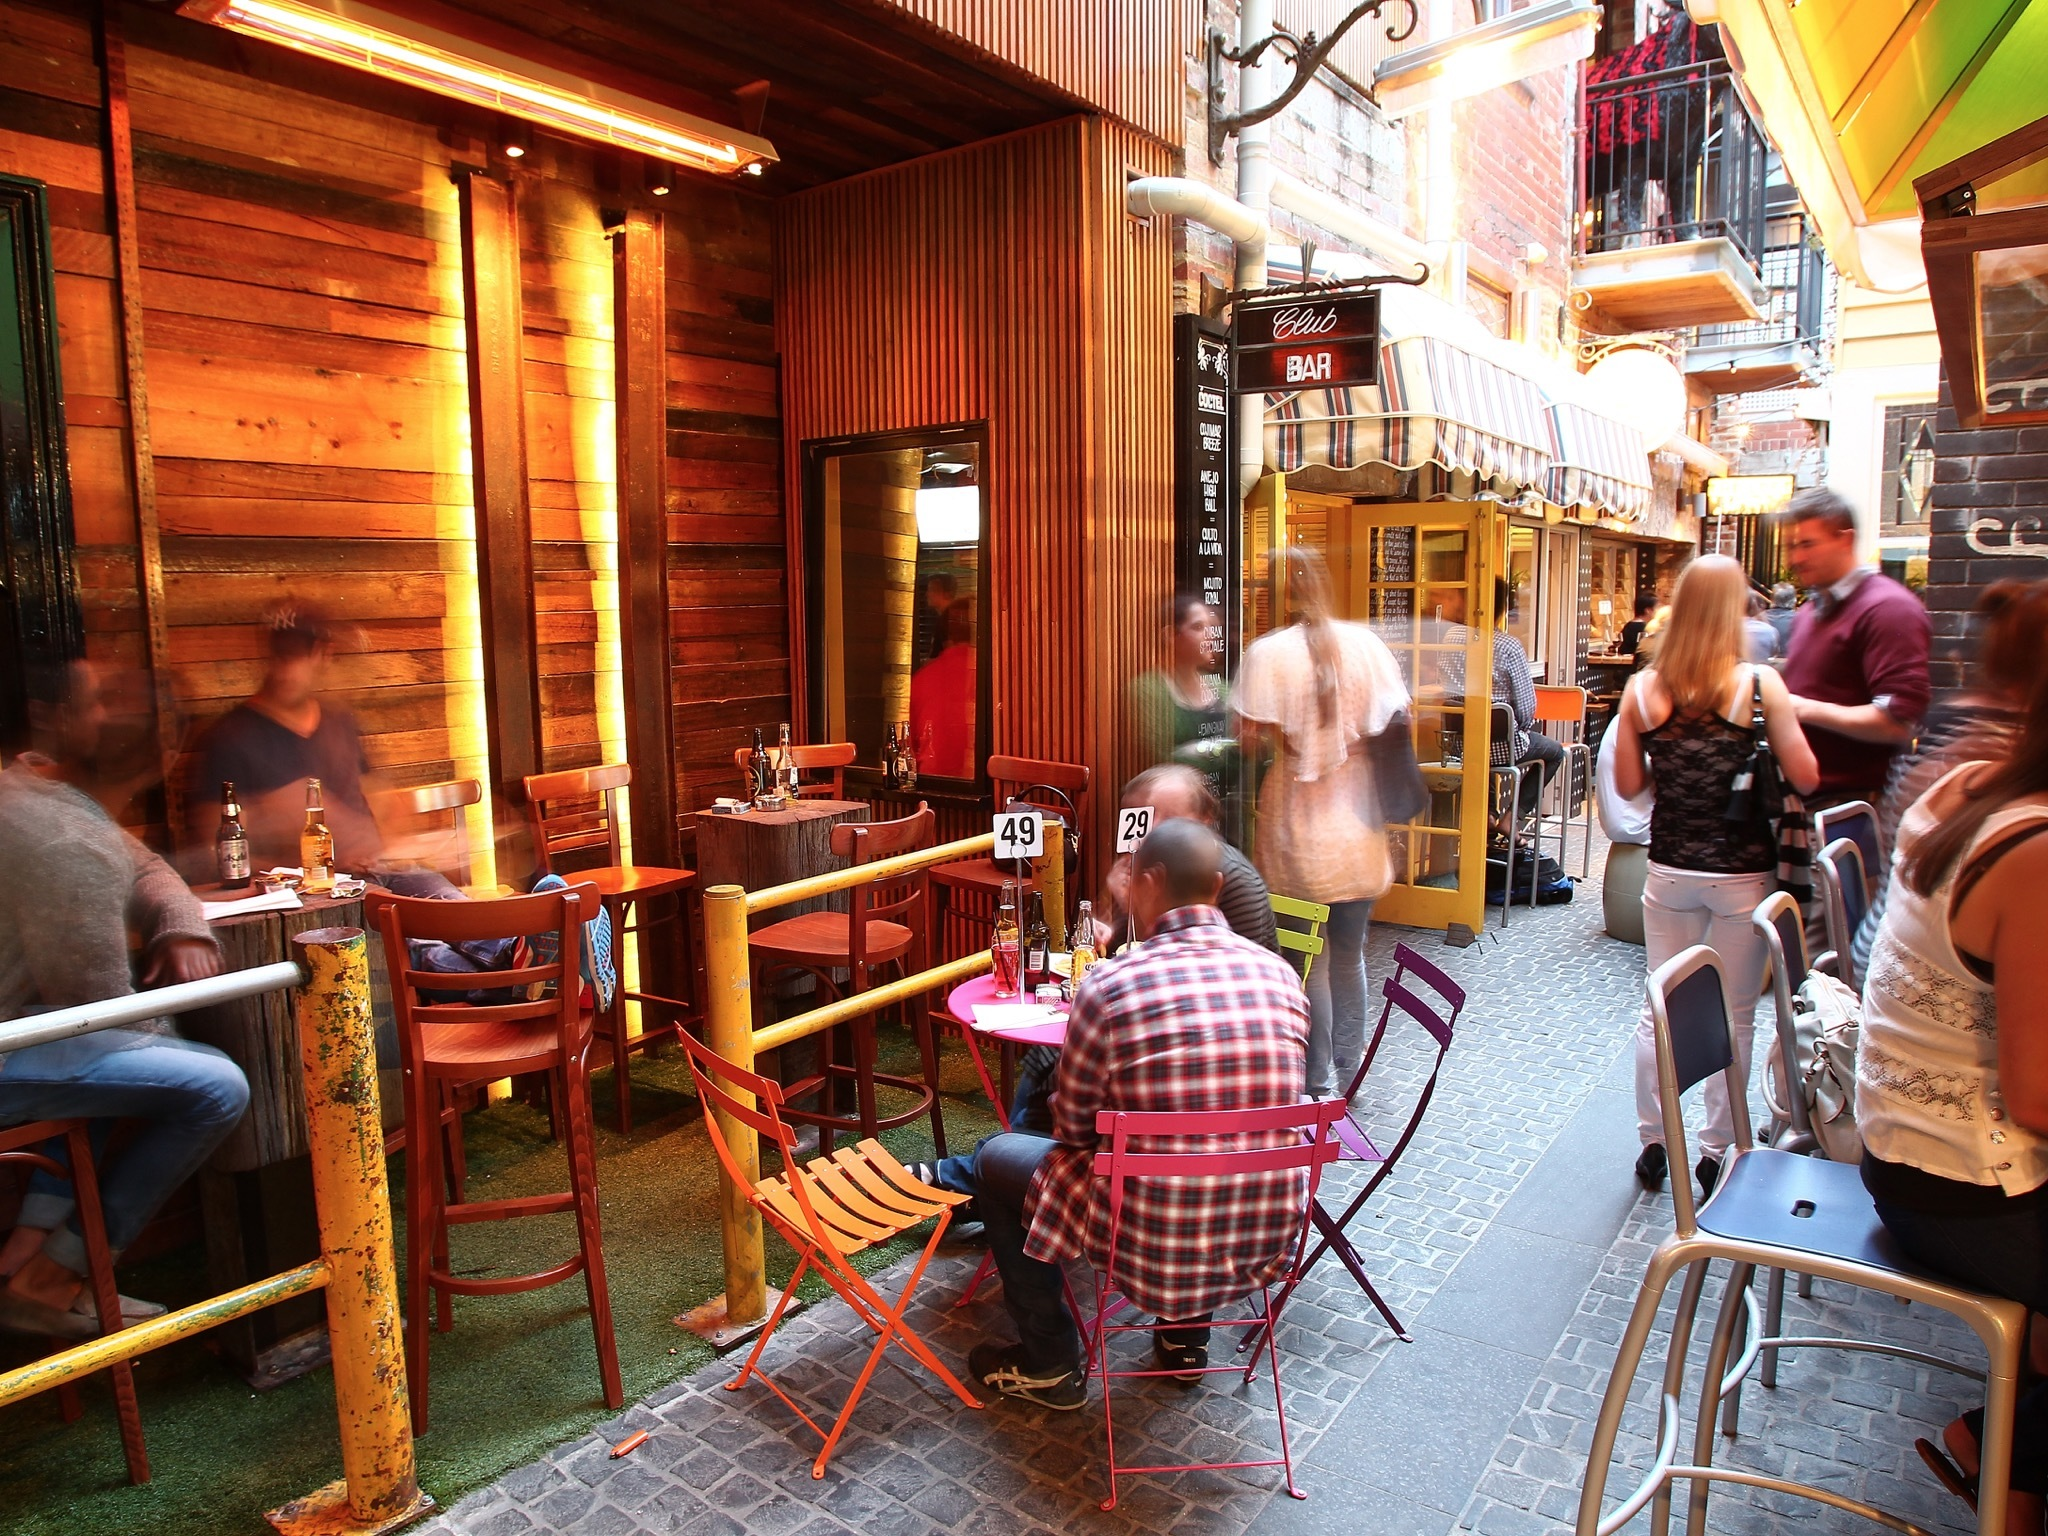 An exterior shot of a laneway at The Bridge Hotel showing people